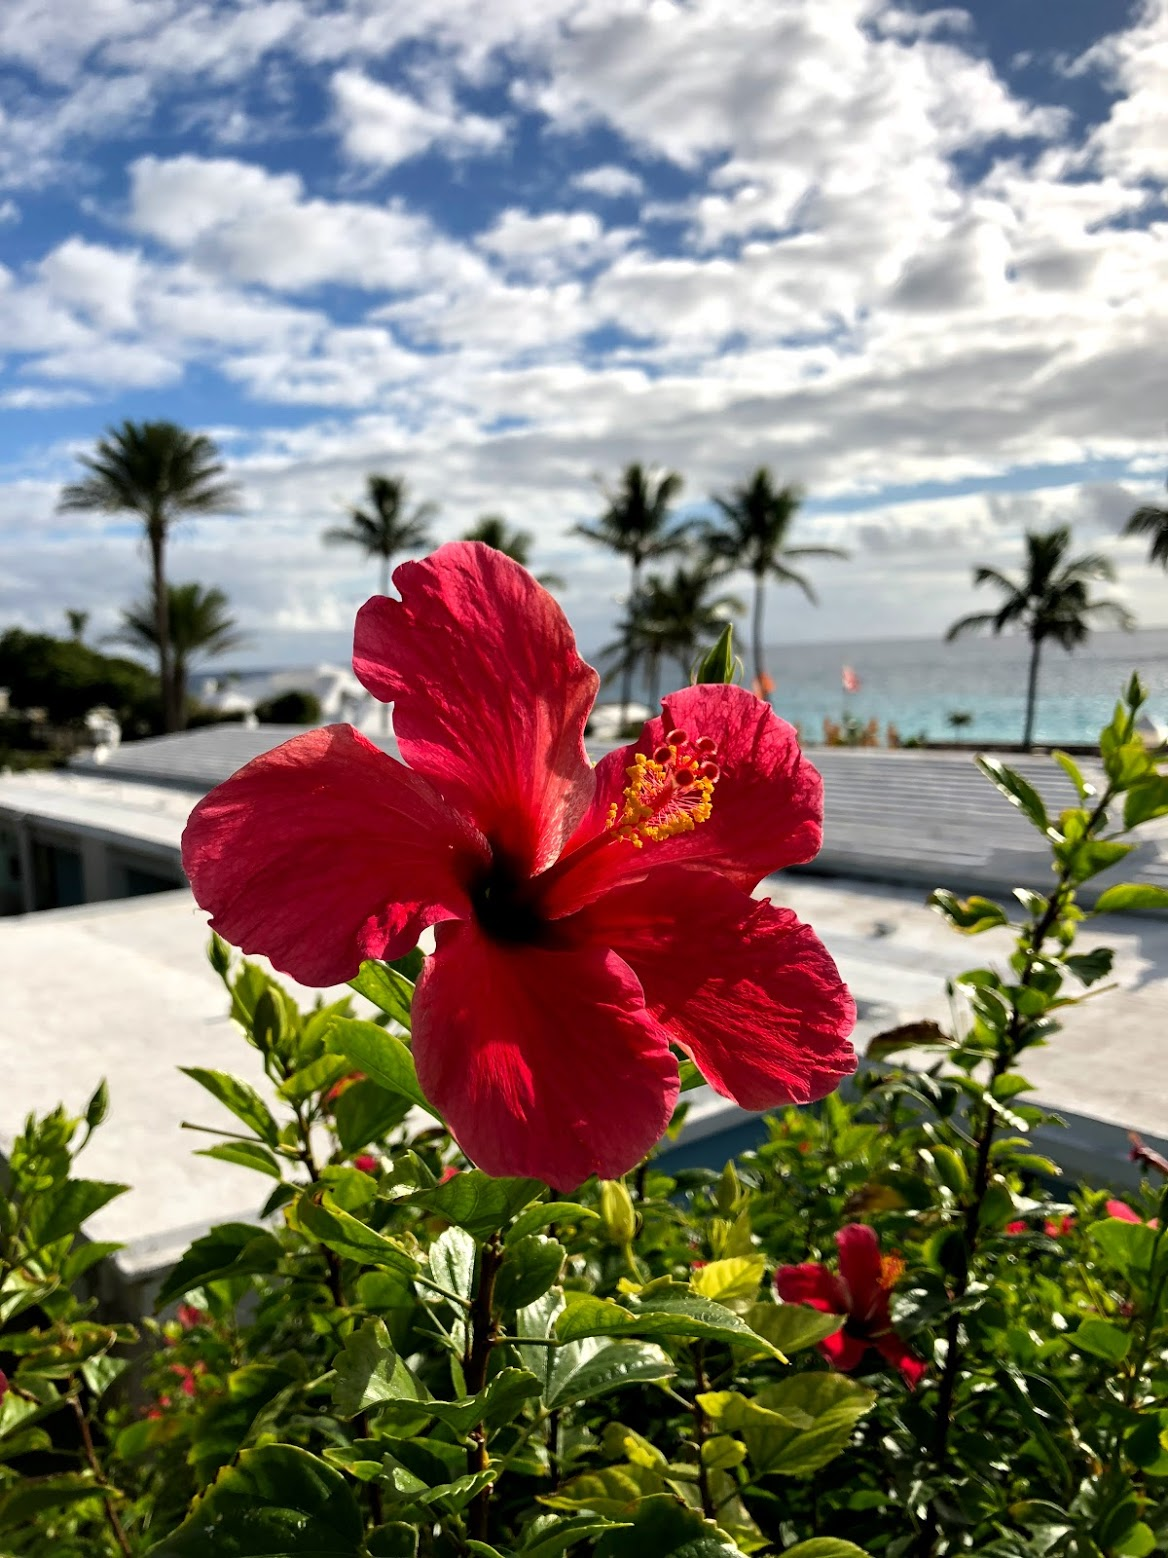 hibiscus, bermuda, the-alyst.com